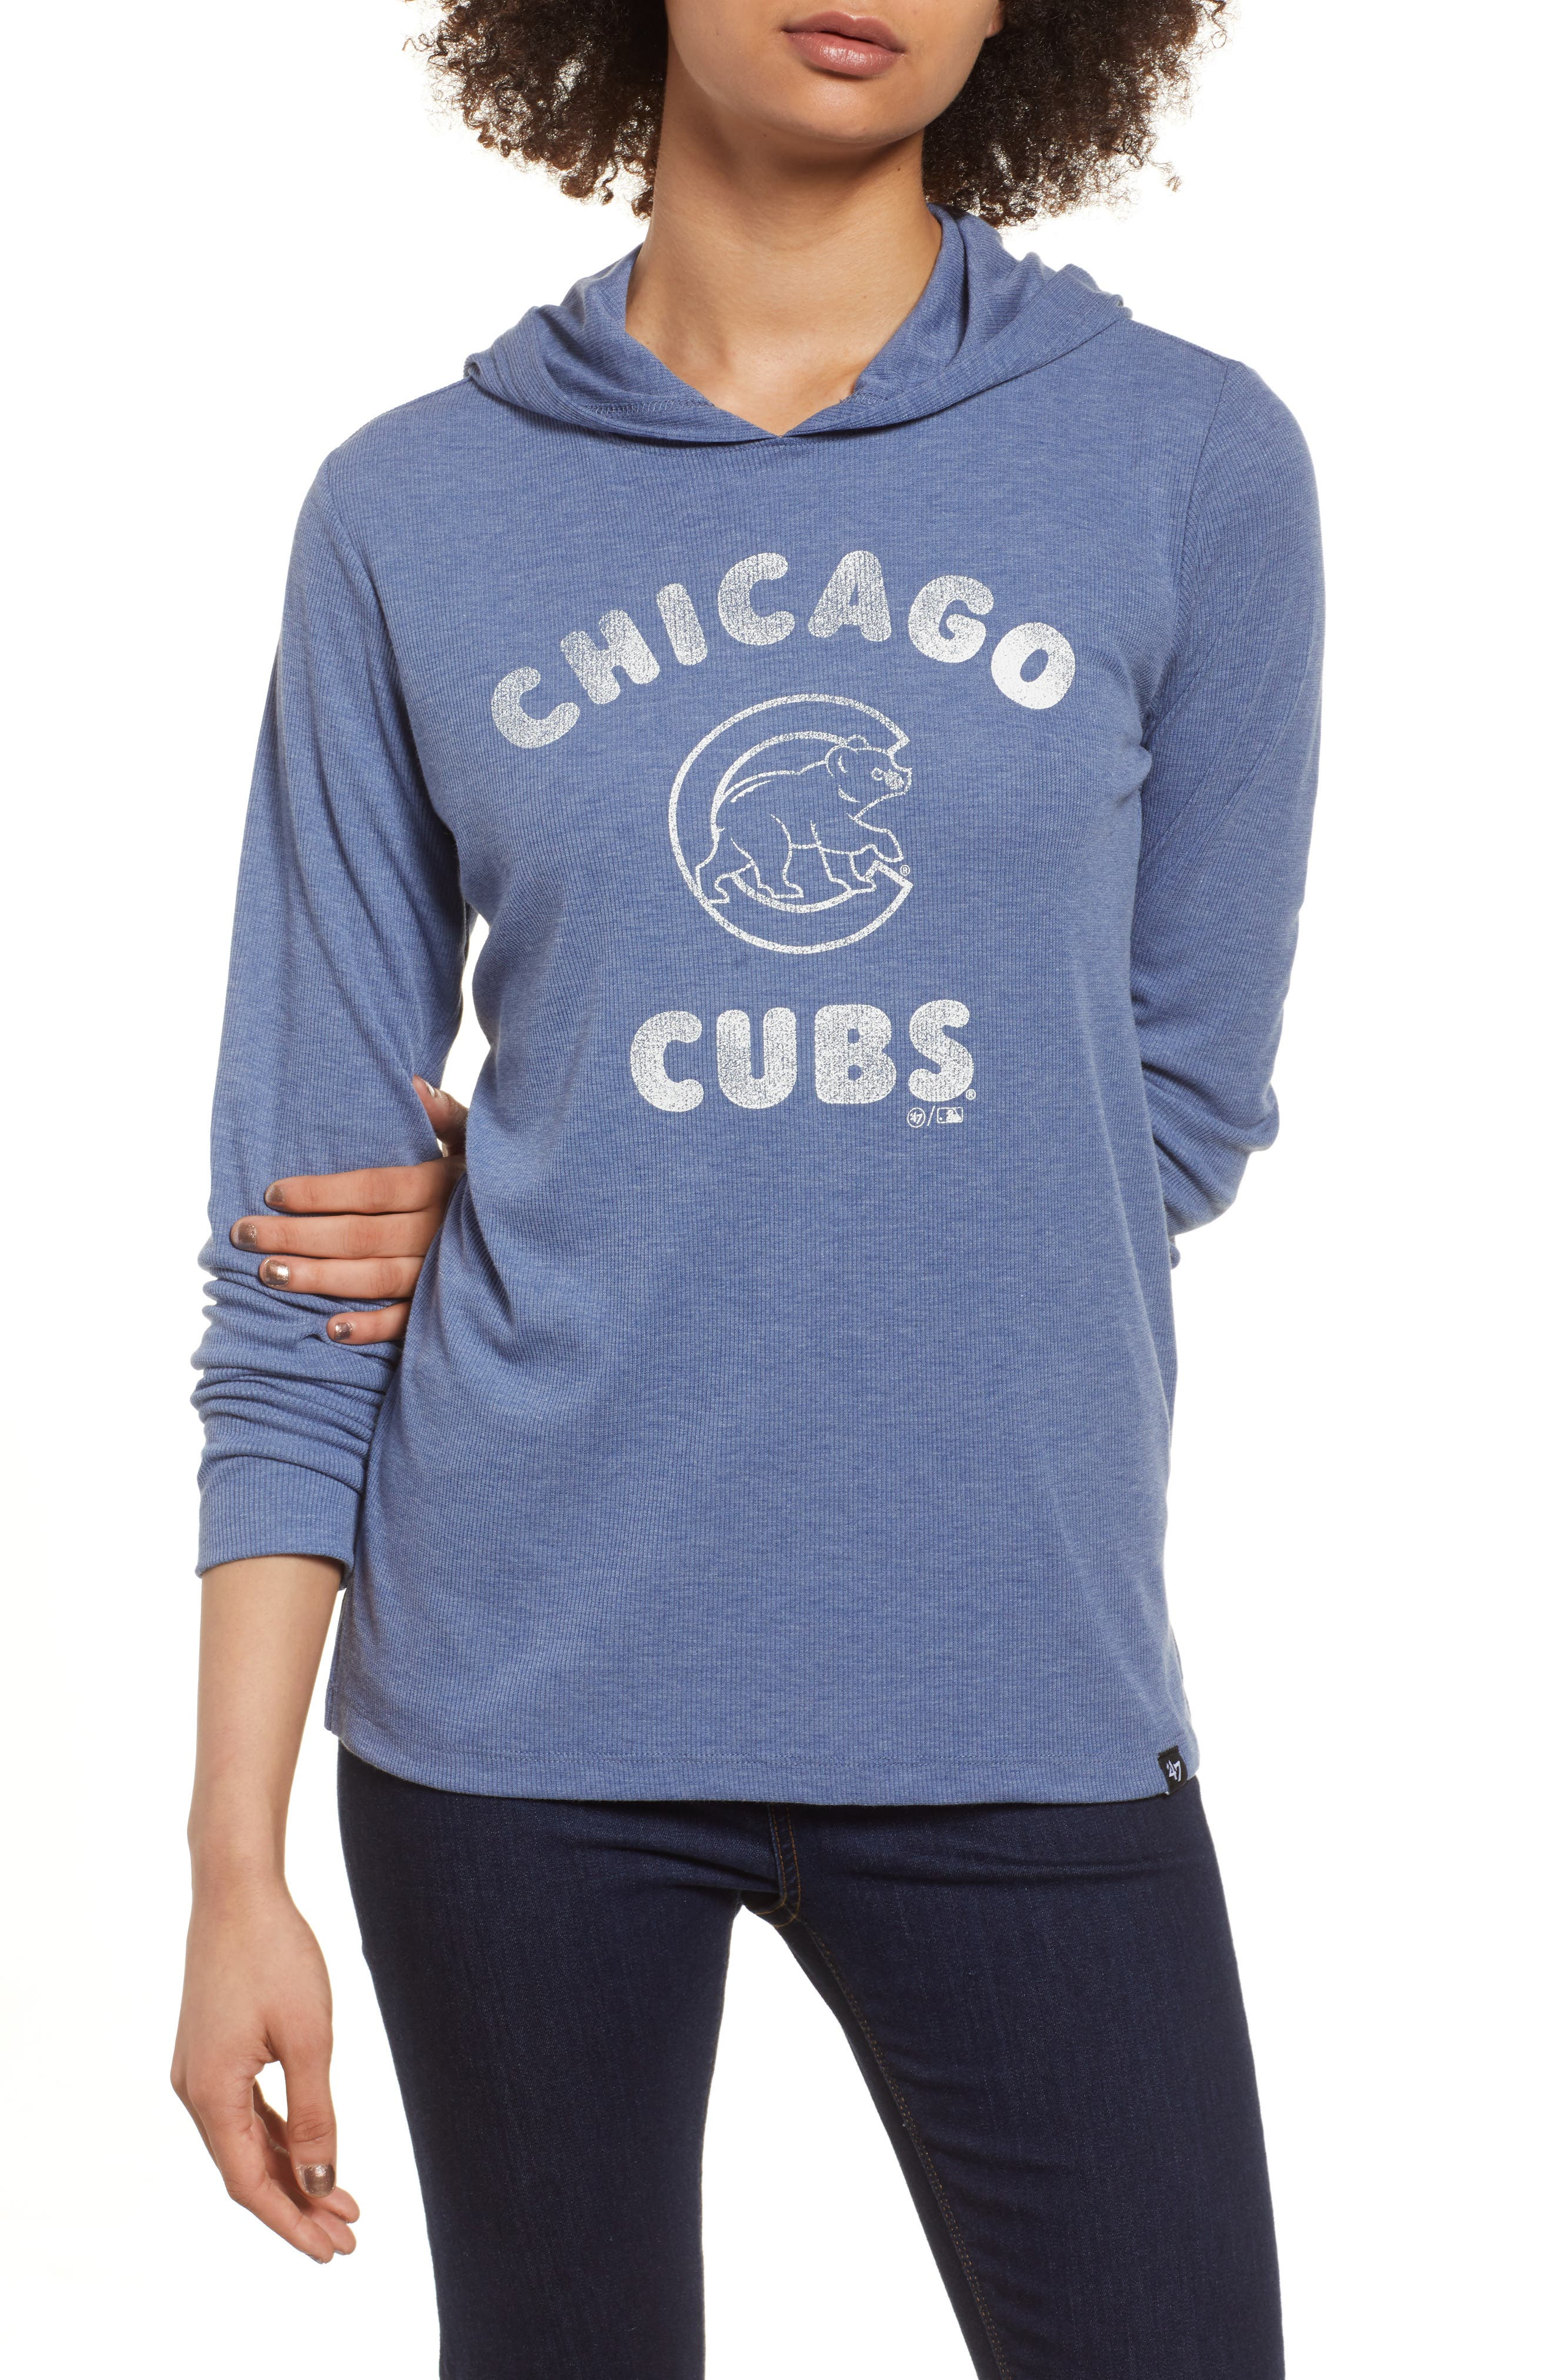 Campbell Chicago Cubs Rib Knit Hoodie,                         Main,                         color, Bleacher Blue